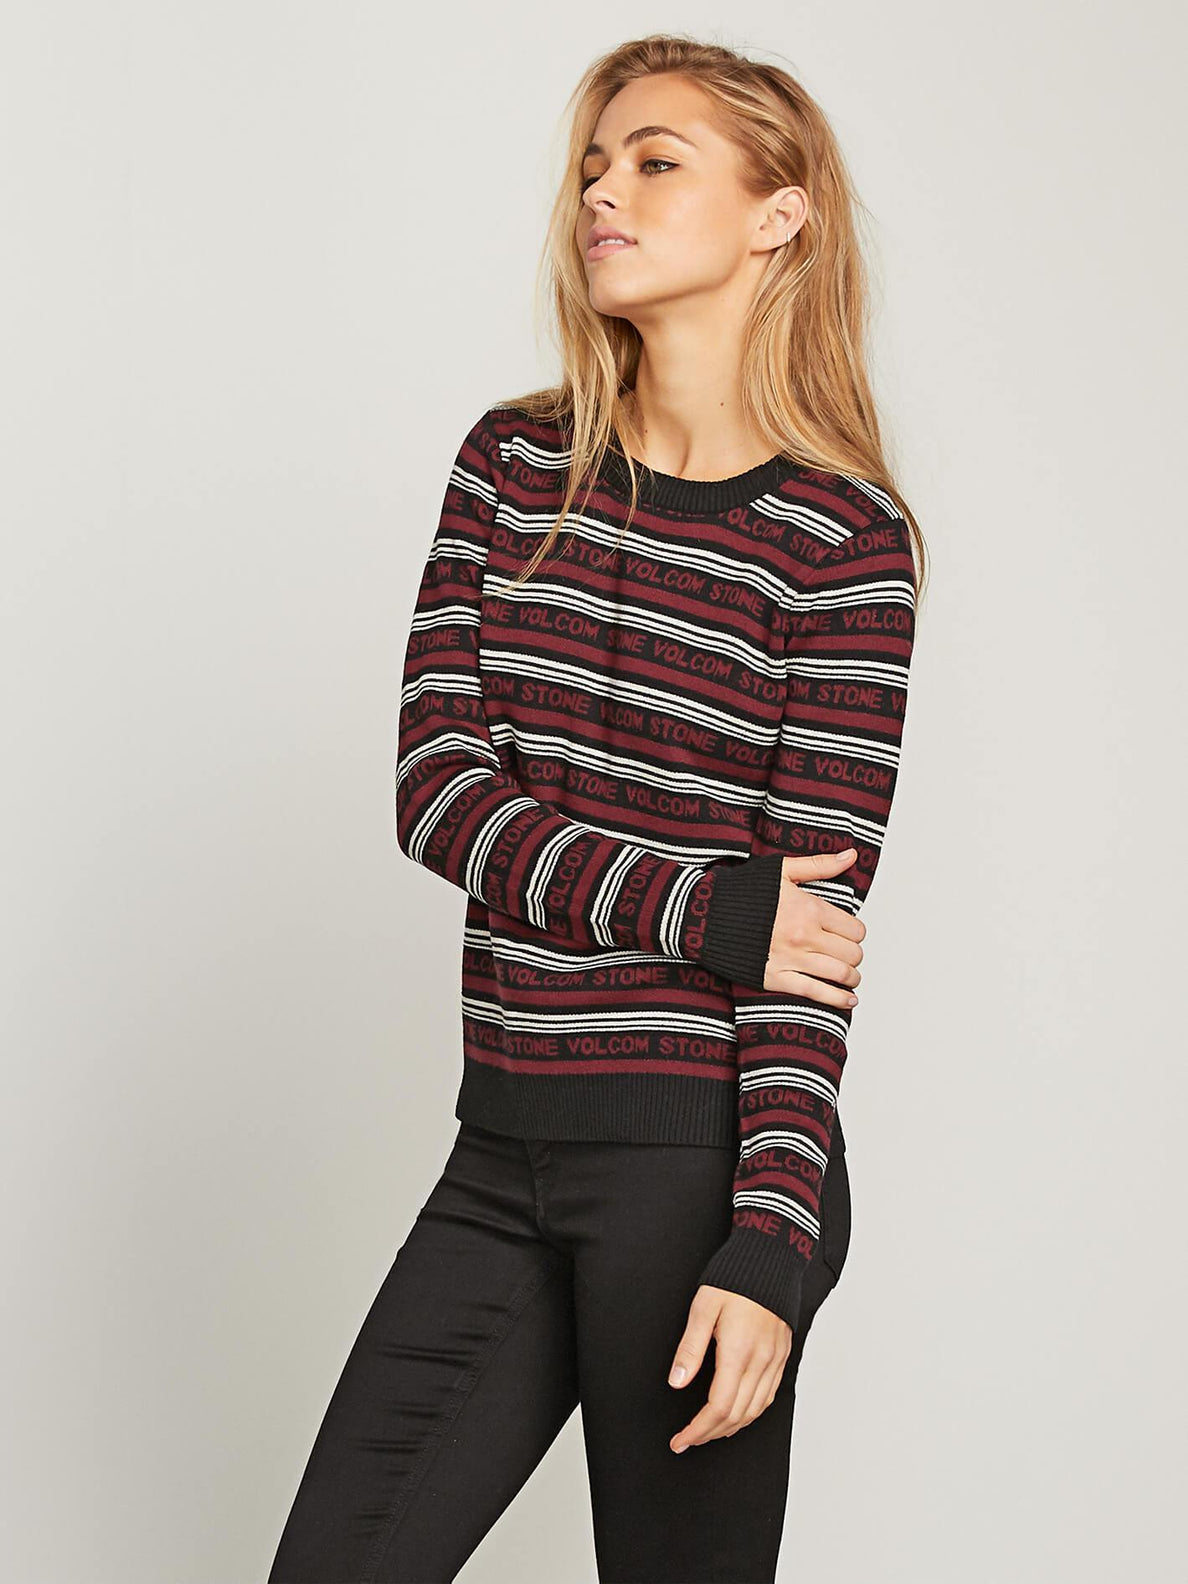 Flip Hop Sweater - Black Combo